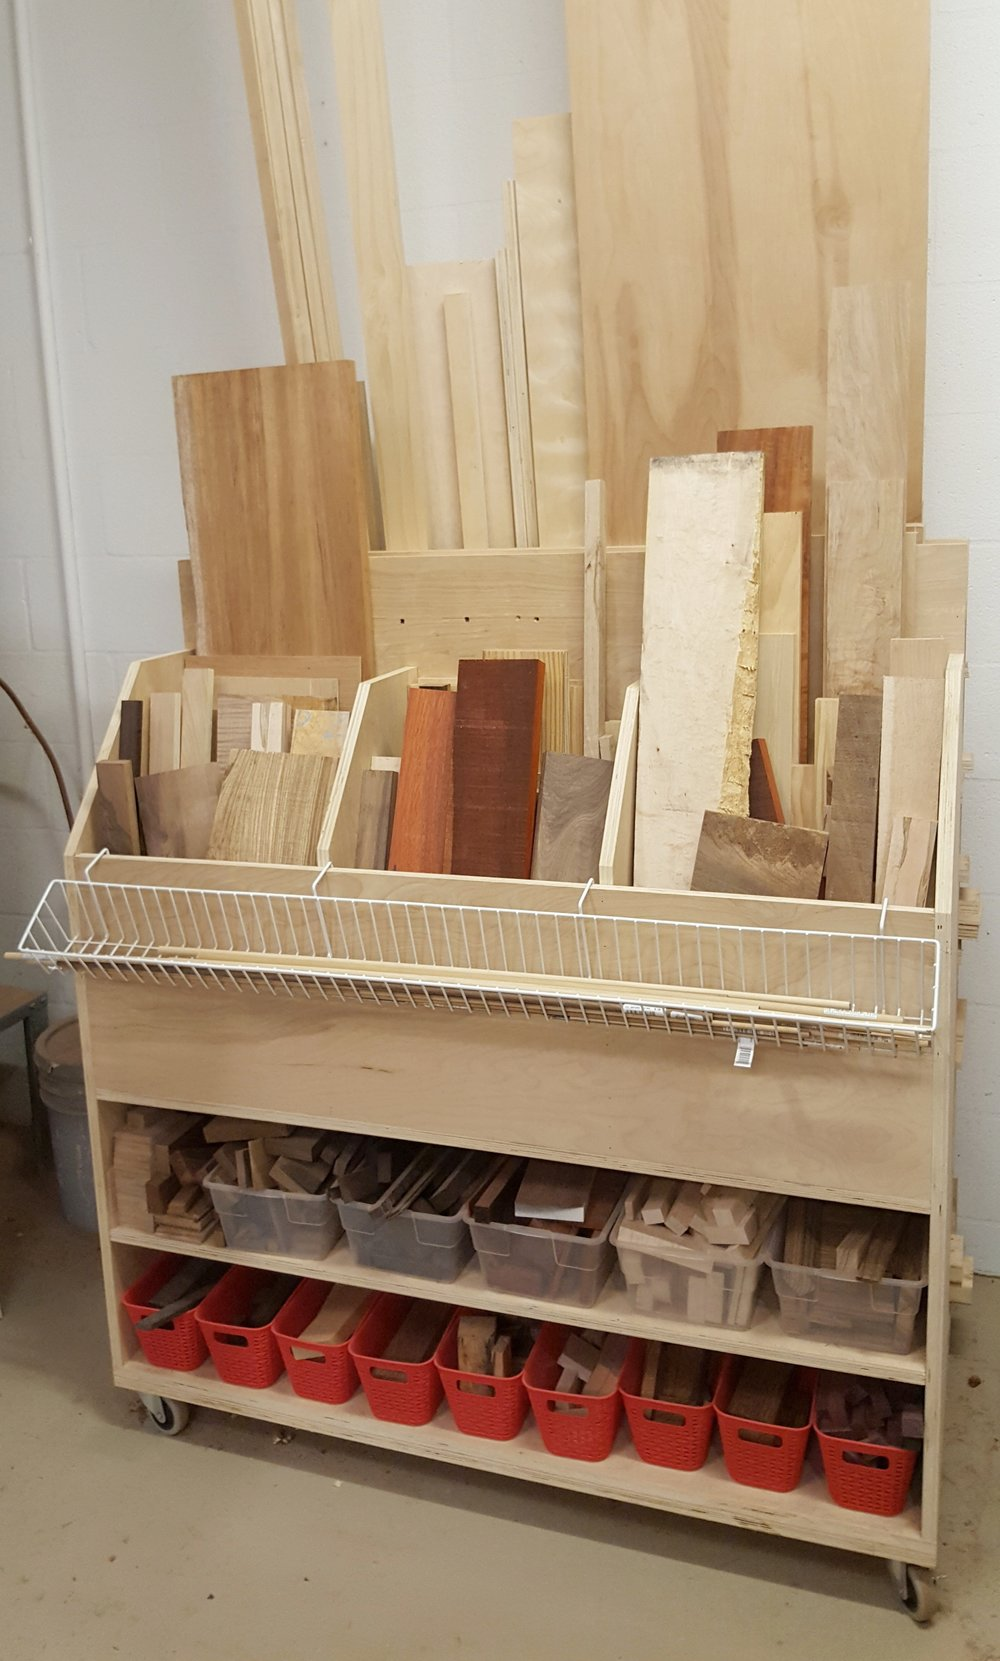 OUR MATERIALS... - Our wood products are made of only solid domestic and exotic hardwoods, such as walnut, purpleheart, birdseye maple, African padauk, and more. This means that no plywood, particleboard, or MDF will ever be found in any of our products.The same goes for stains, paints, and dyes:none of the wood in RedBeard's products has been visually altered in any way, and so all of the wood you see here is as it naturally appears.As for our knives, we use a number of different steels with varying degrees of hardness, depending on the application. D2 tool steel and 440C stainless are our personal favorites;and, of course, the steel of every RedBeard knife will be labeled accordingly in our shop.